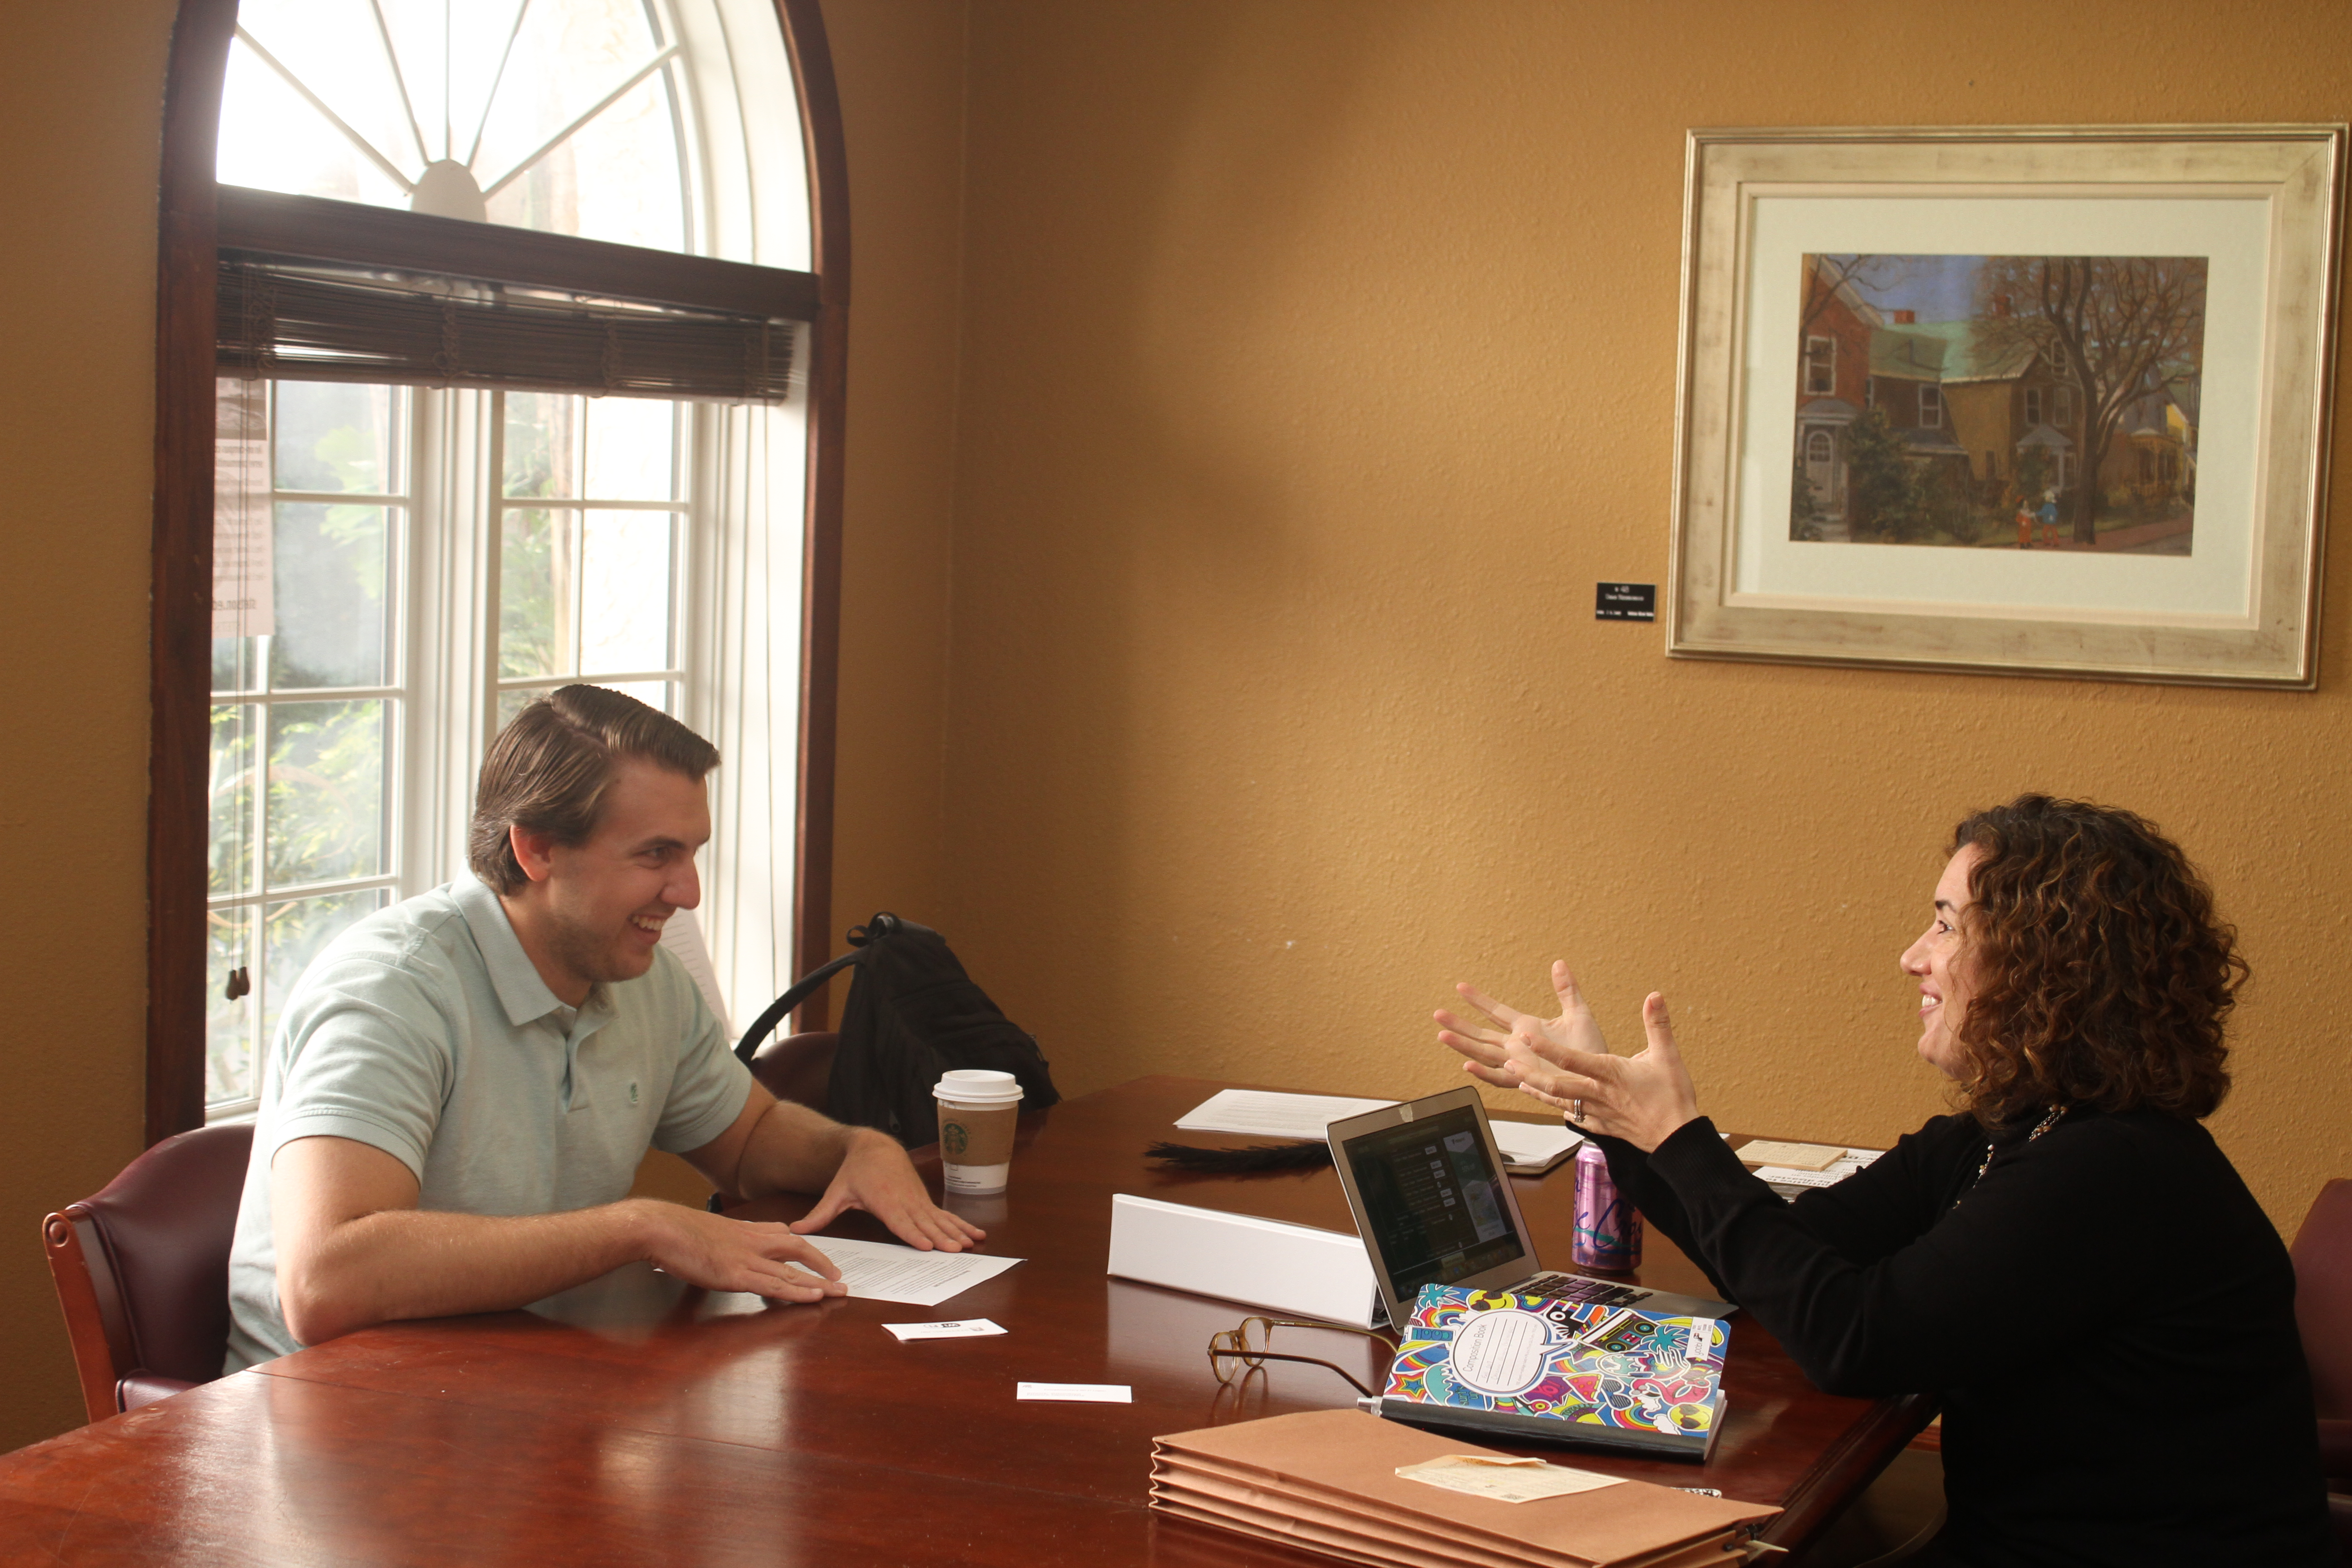 (L-R): Student works with Professor Cerniglia in the Disaster Research Project.